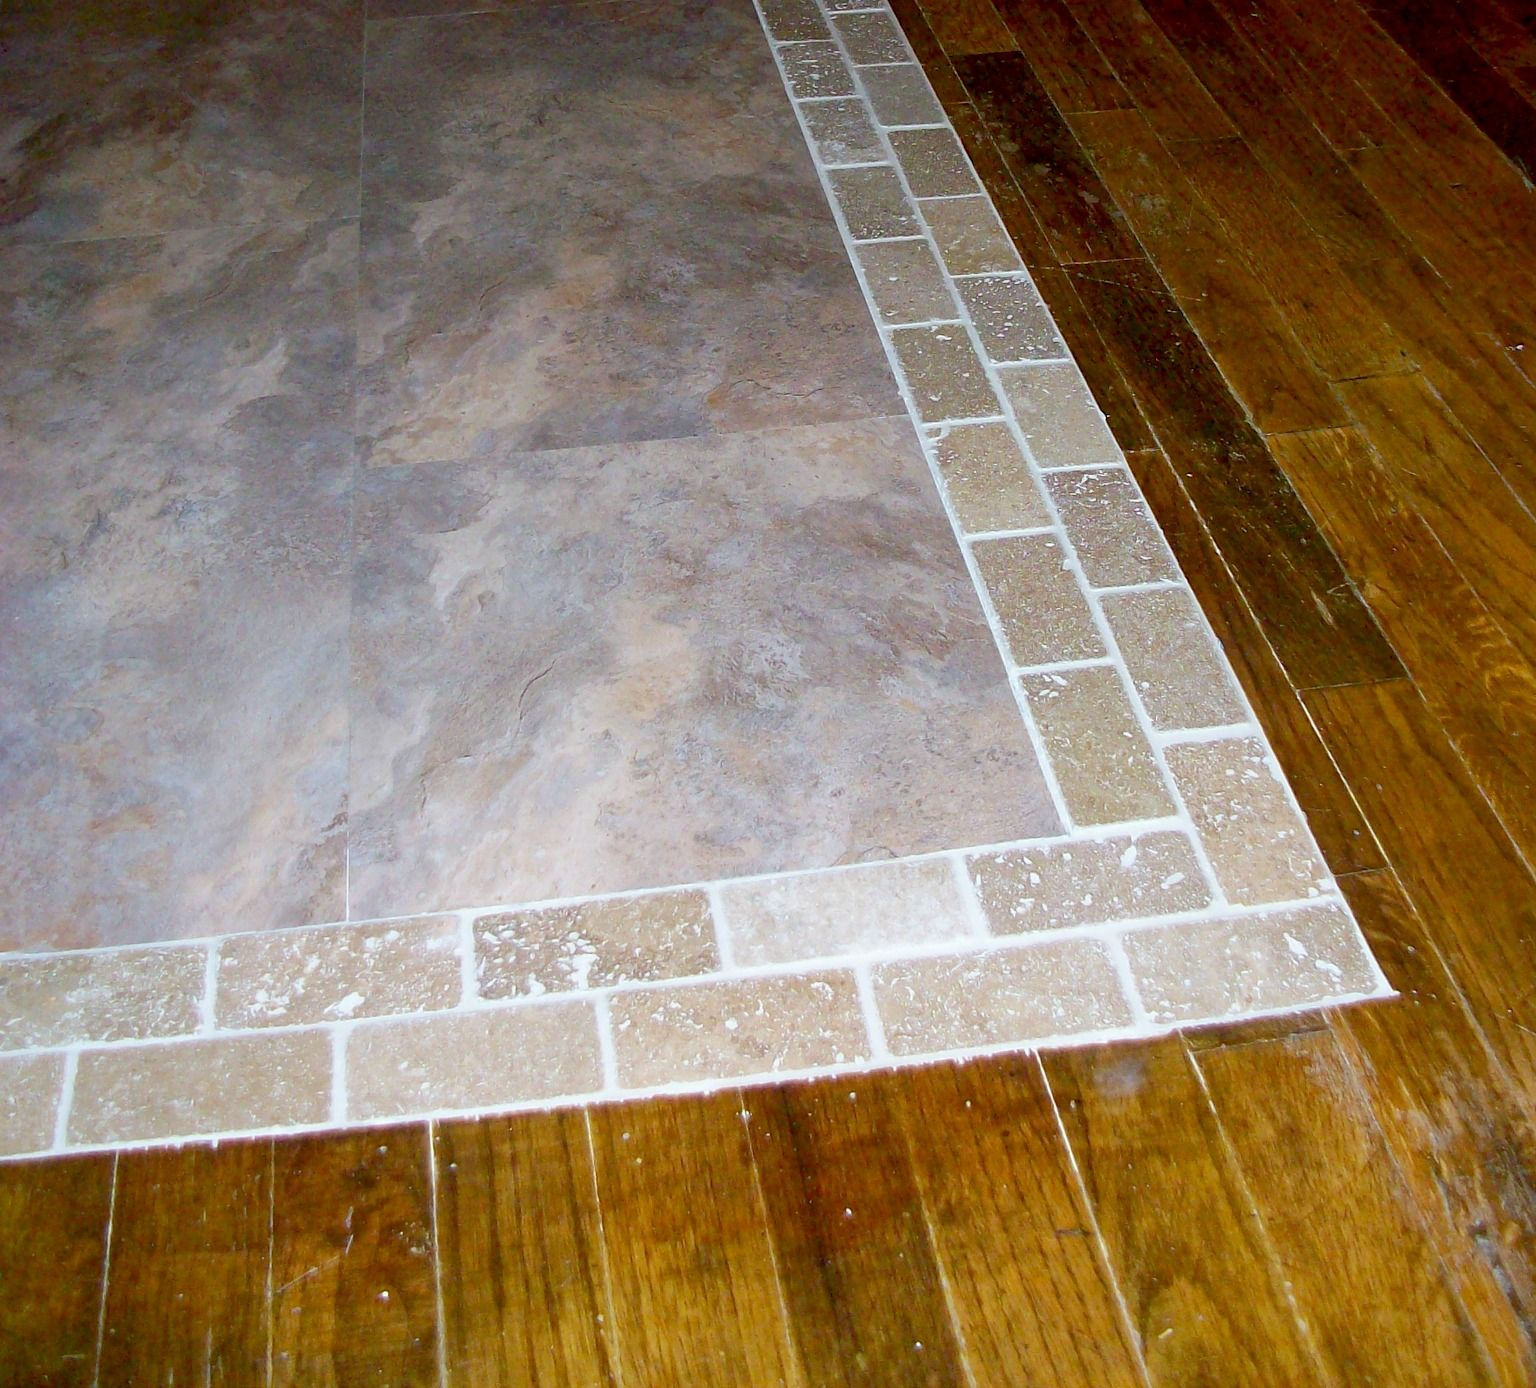 Floor transition from hardwood to tile google search for erica floor transition from hardwood to tile google search dailygadgetfo Images